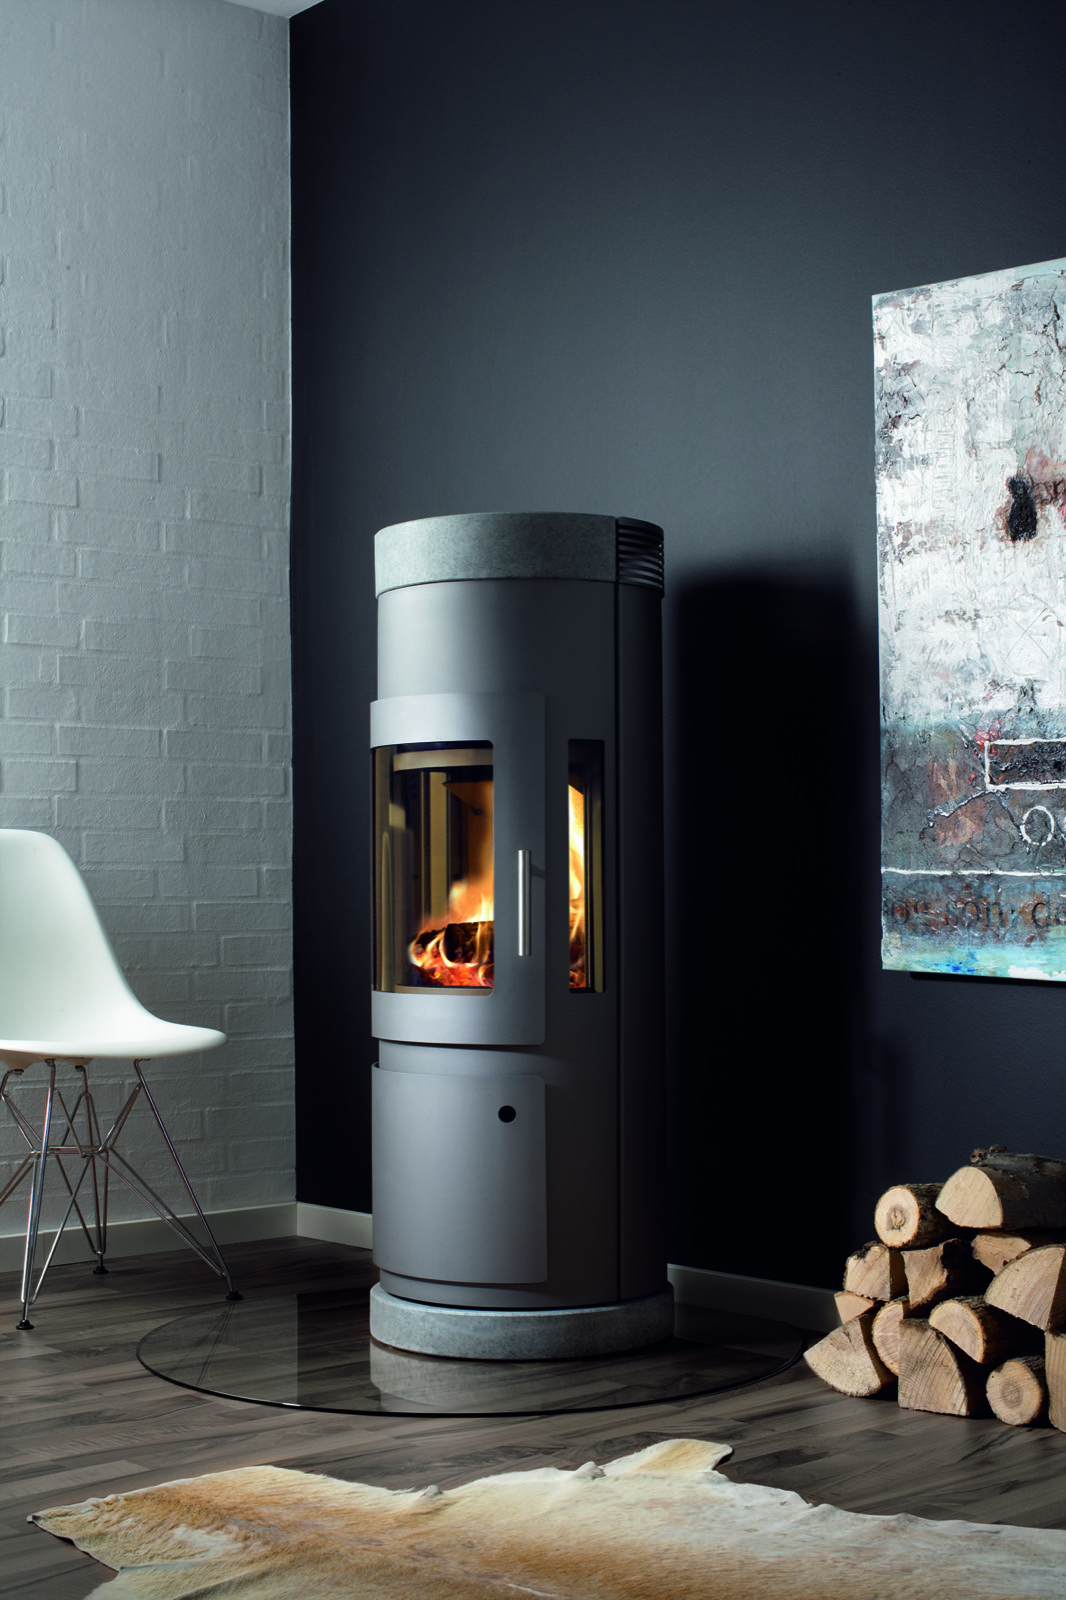 Westfire Uniq 16 Wood Burning Stove In Black With 100mm